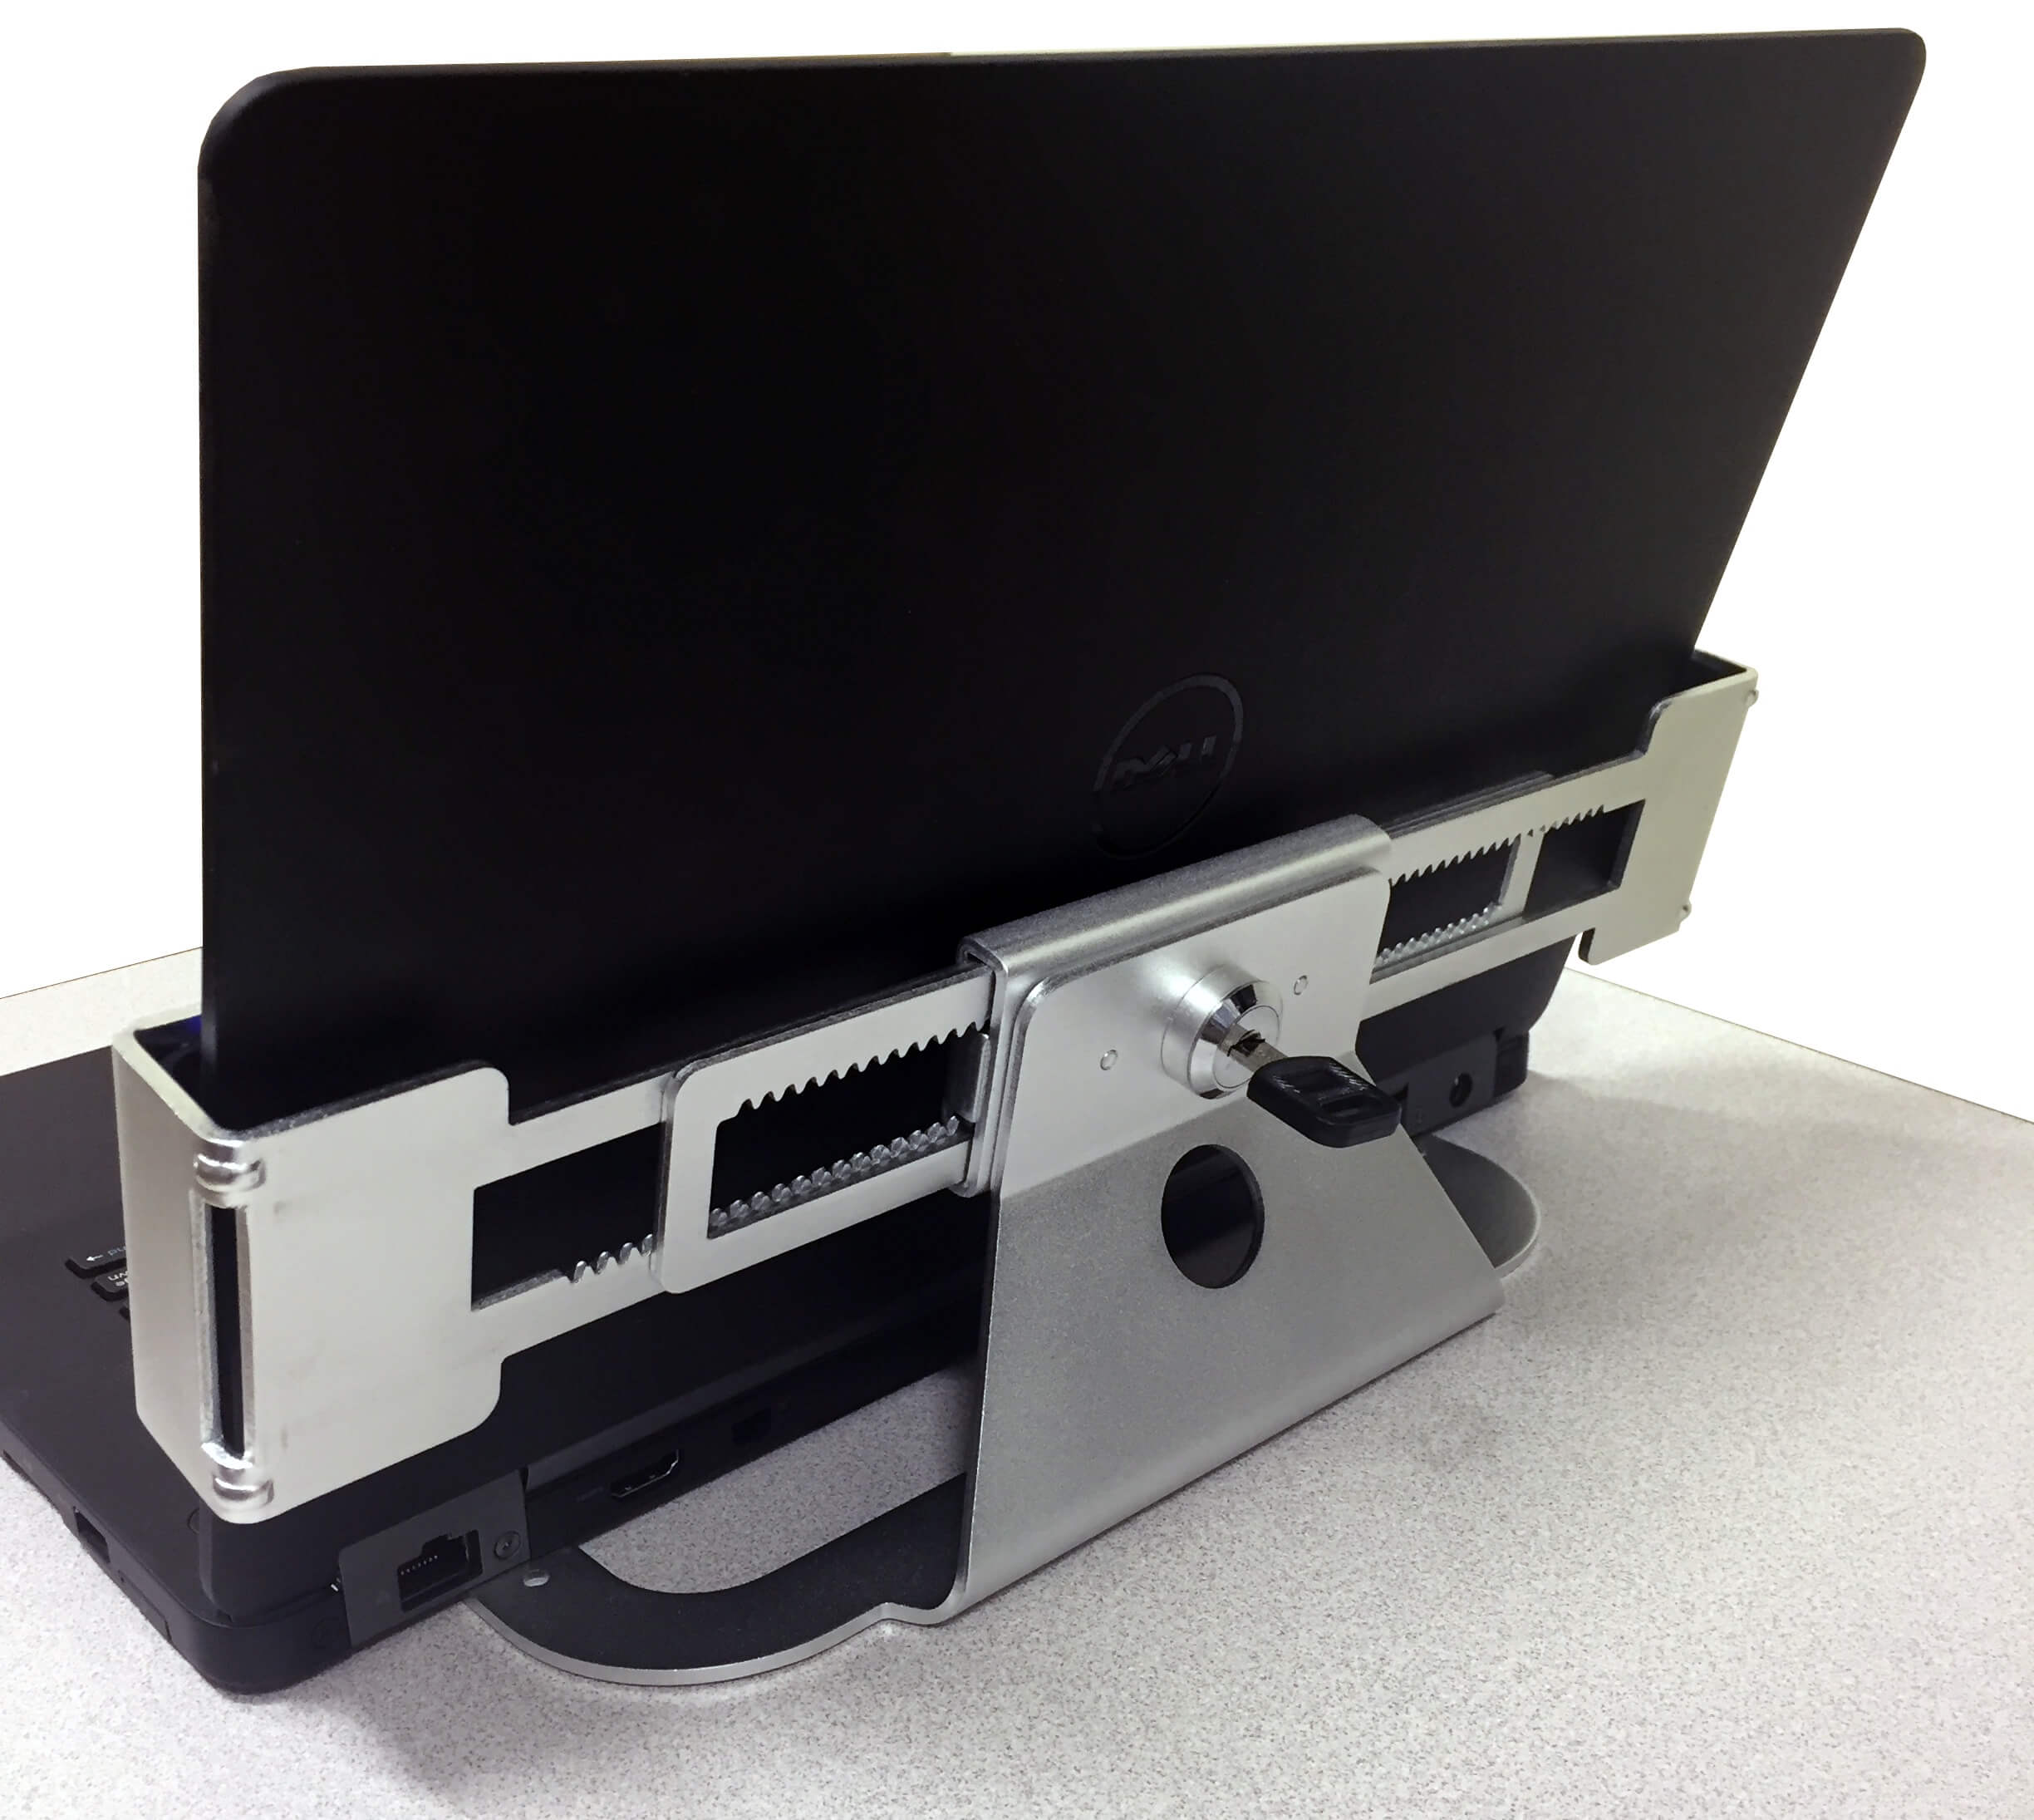 B114 Laptop Security Bracket for NB & RC Series Mobile Powered Workstations by Newcastle Systems